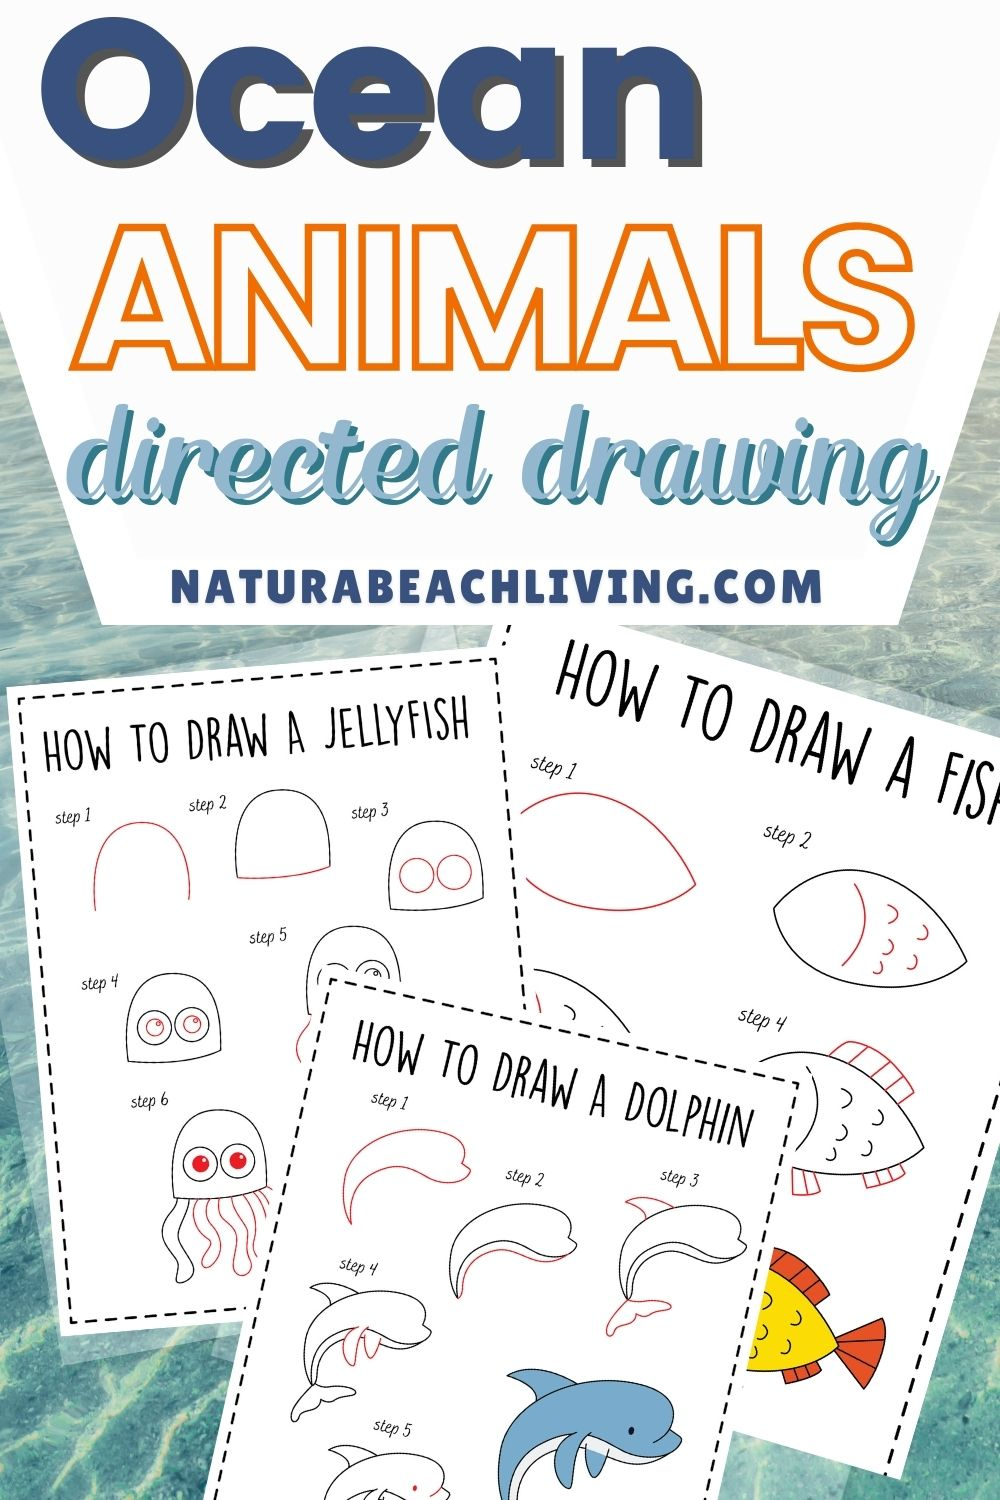 How to Draw Ocean Animals